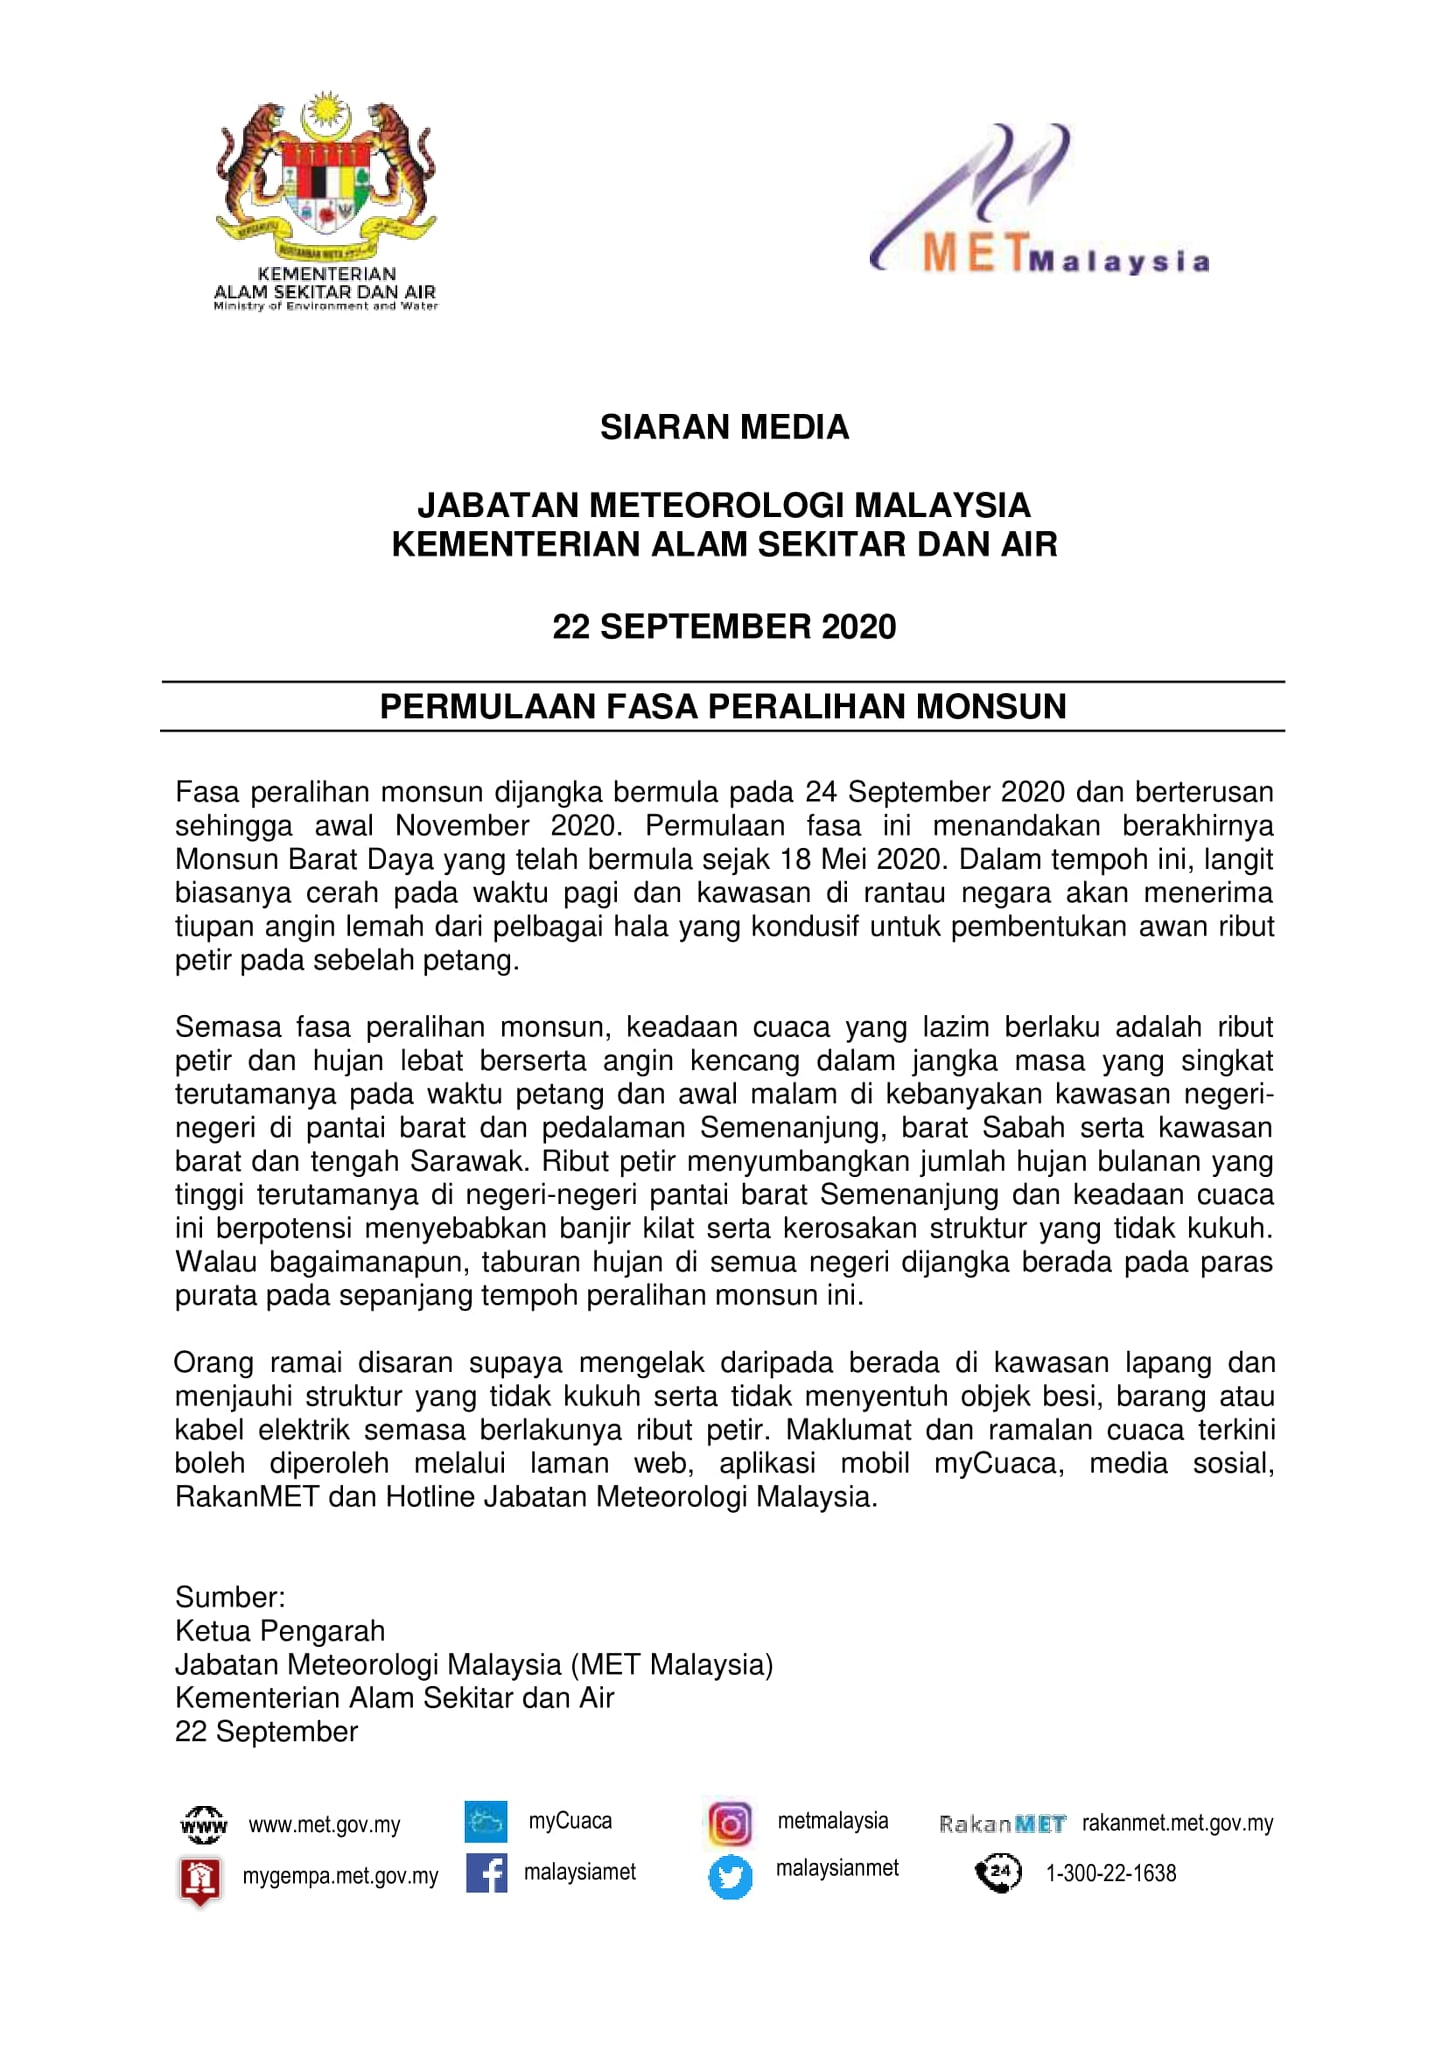 Image from Malaysian Meteorological Department (Facebook)